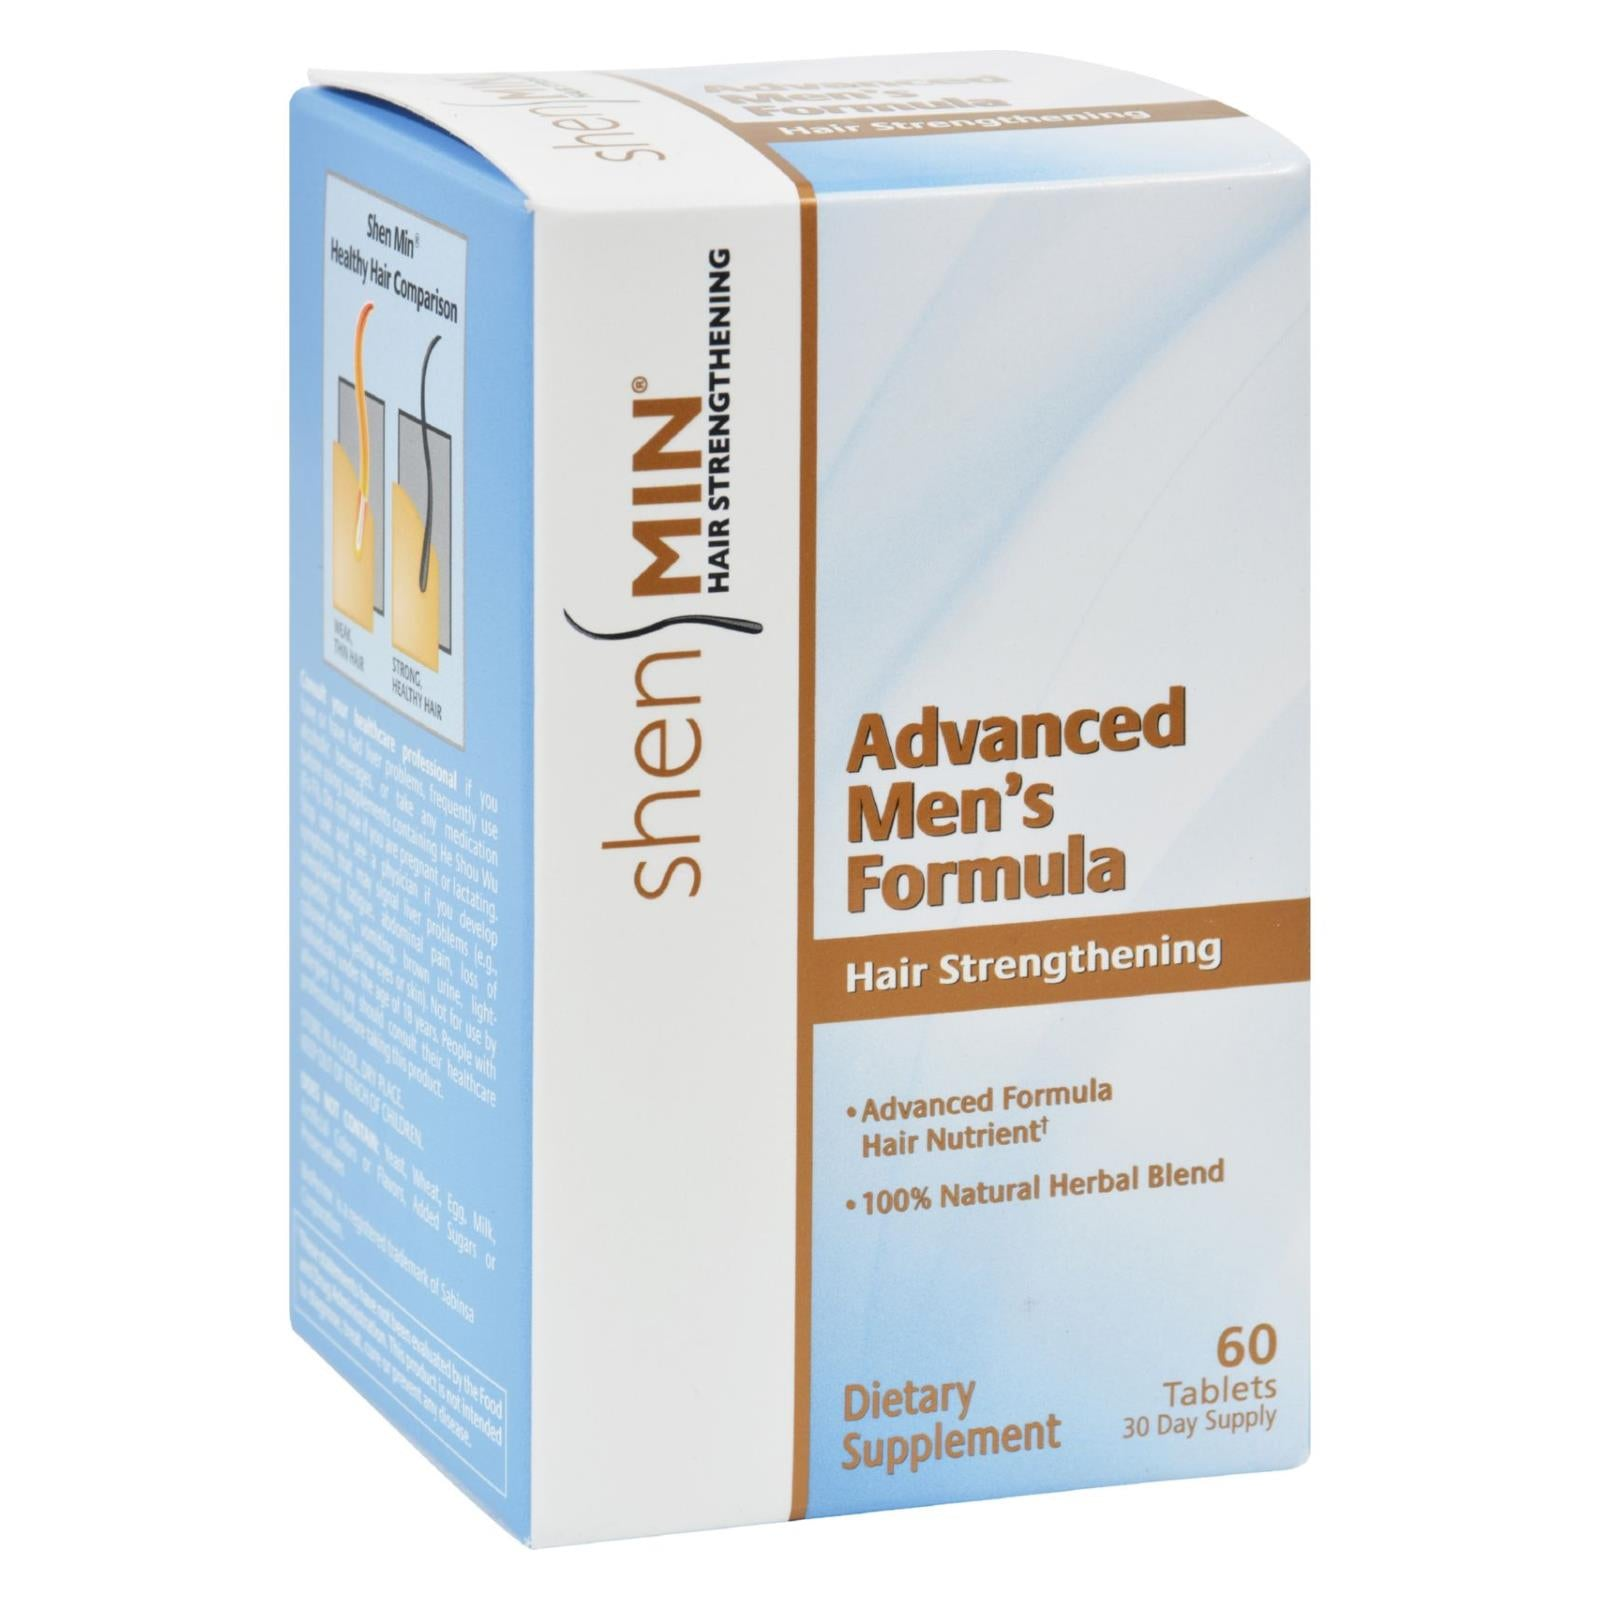 Shen Min Hair Nutrient Advanced Men's Formula - 60 Tablets HG0908210